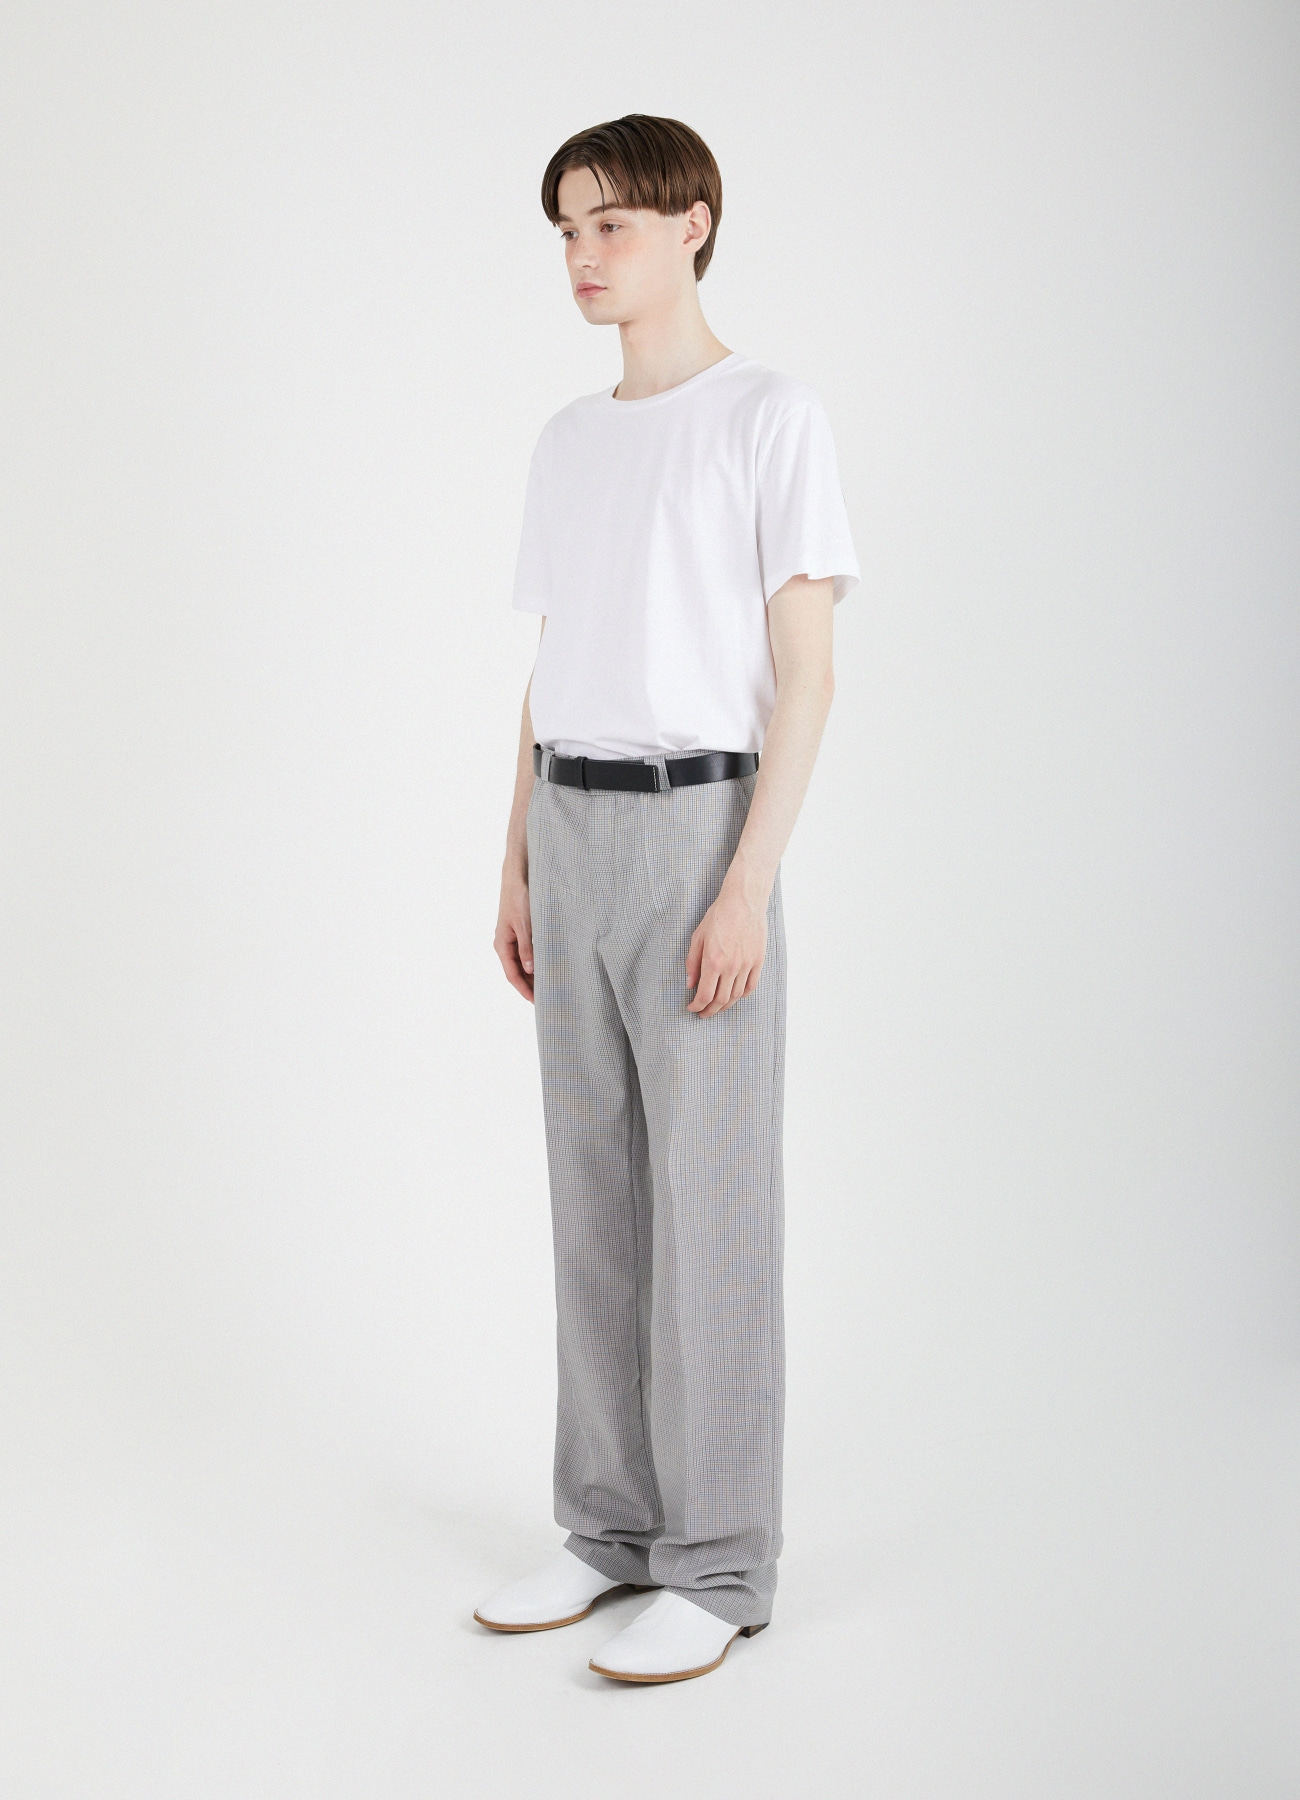 Onyx Relaxed Trousers - Beige Gray